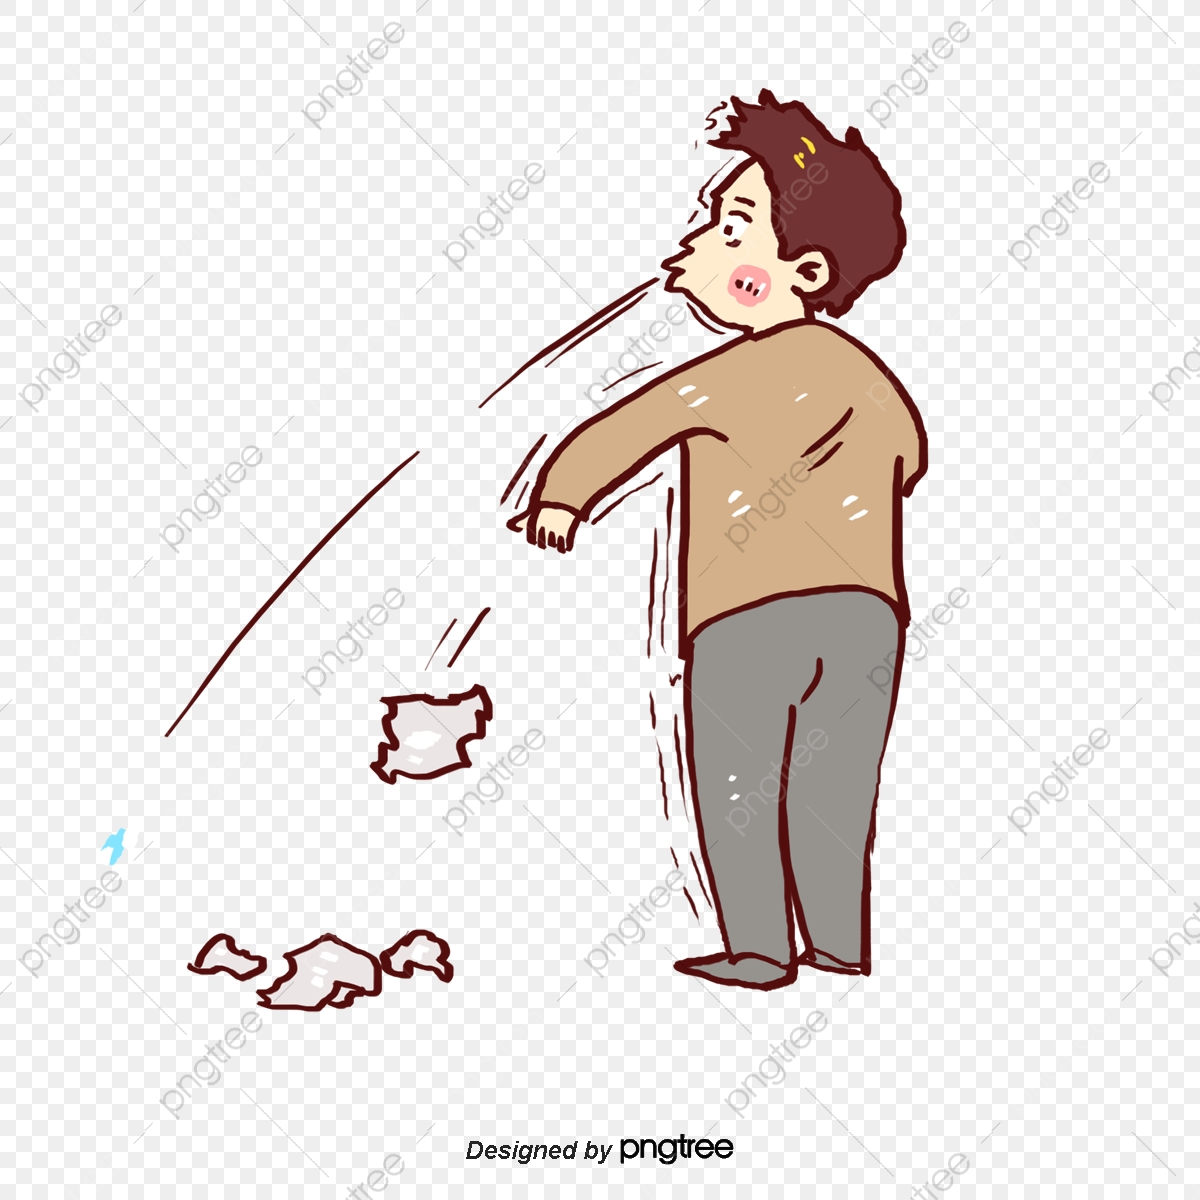 A Litter Boy, Boy Vector, Vector Png, Environmental Advertisement